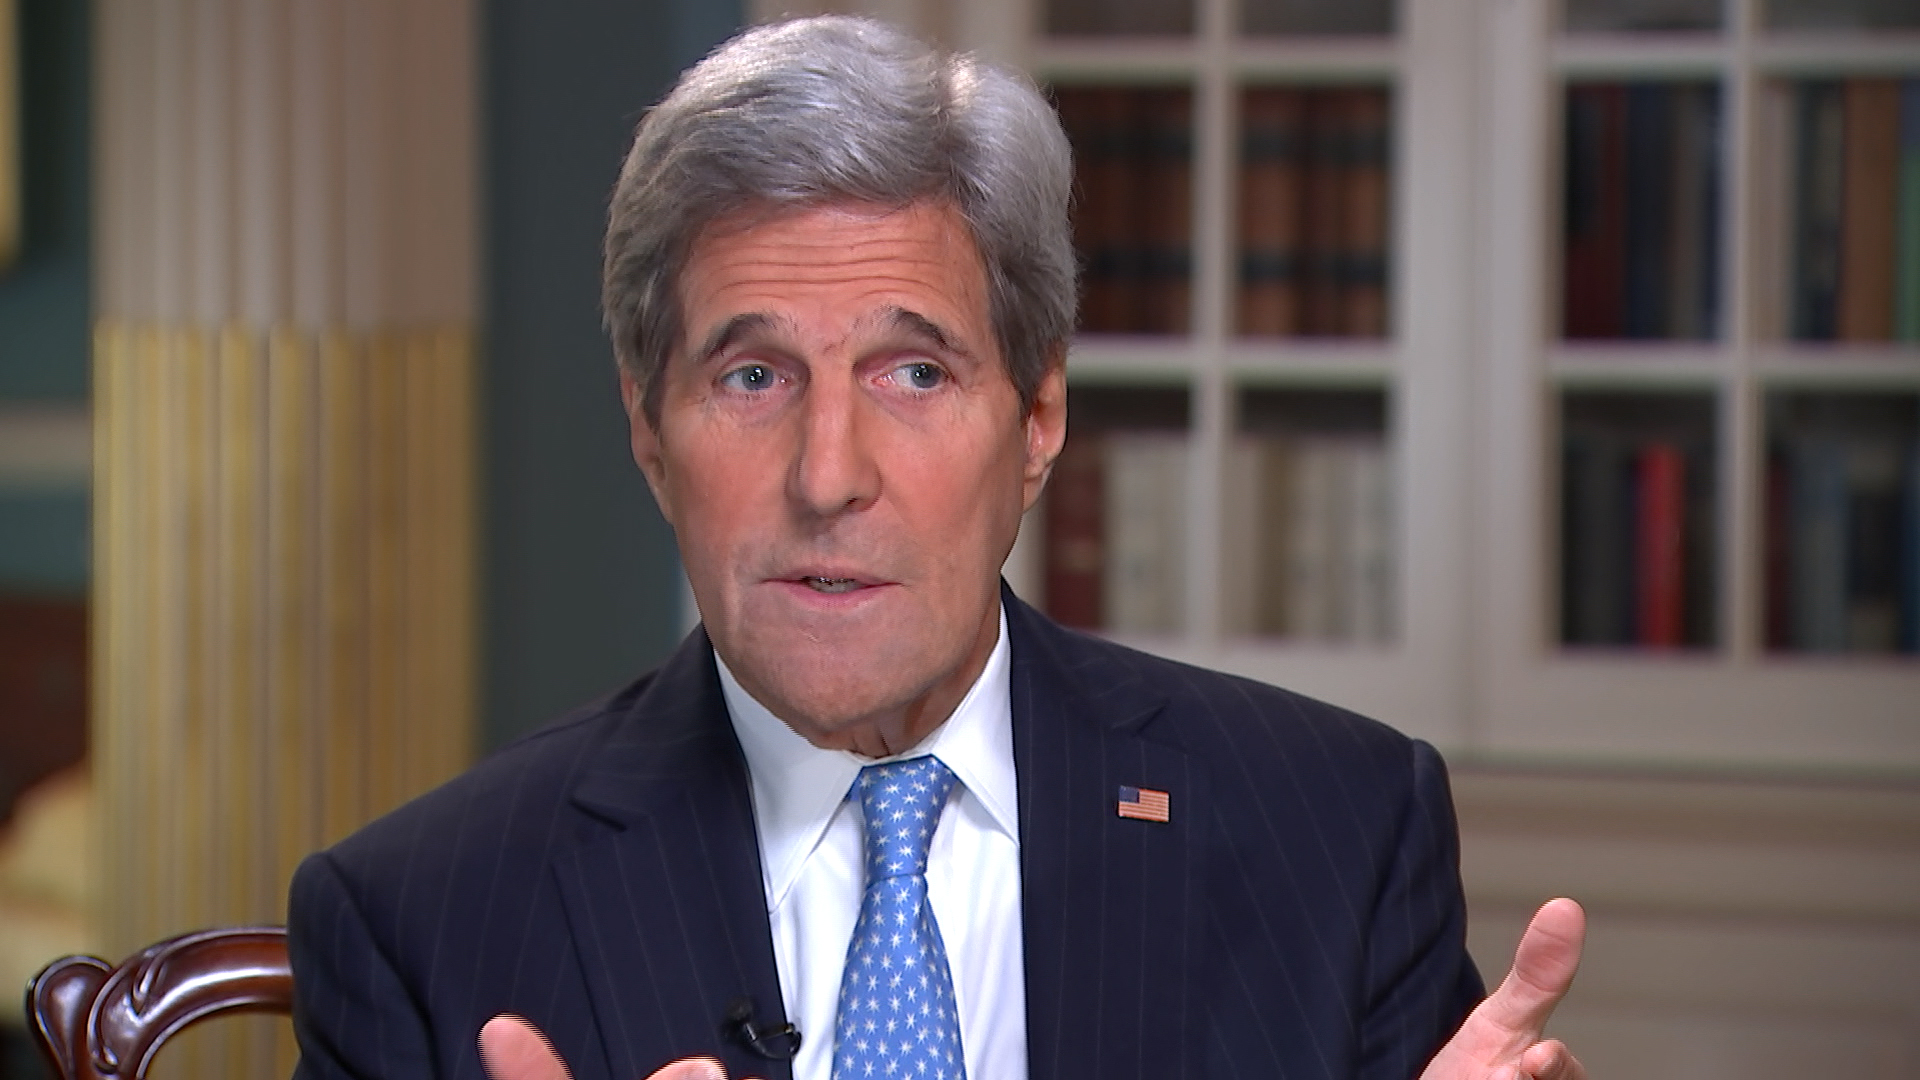 Secy. Kerry says TPP 'will create jobs'